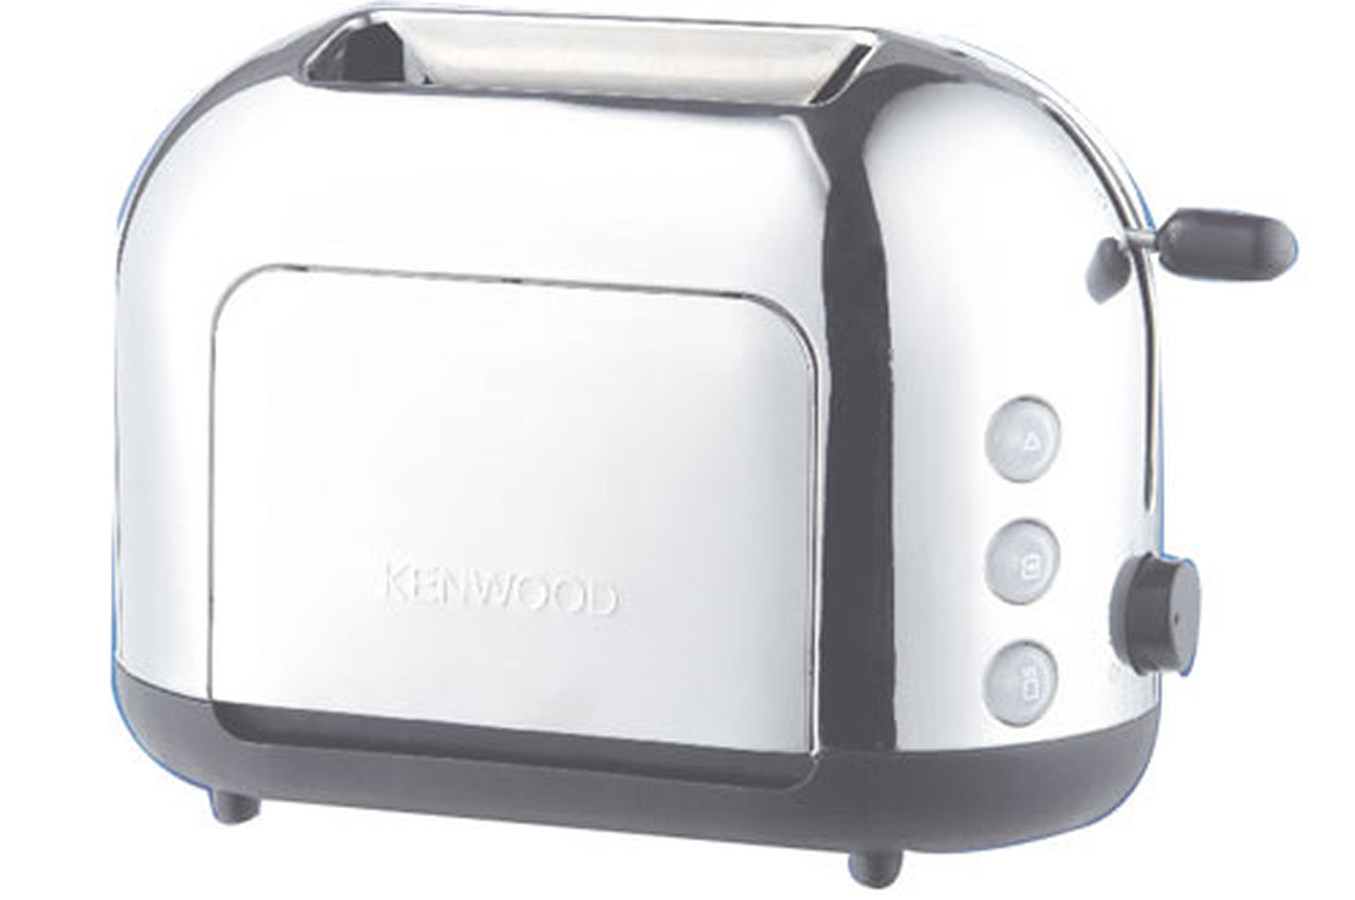 grille pain kenwood ttm 332 toaster inox 2786494 darty. Black Bedroom Furniture Sets. Home Design Ideas